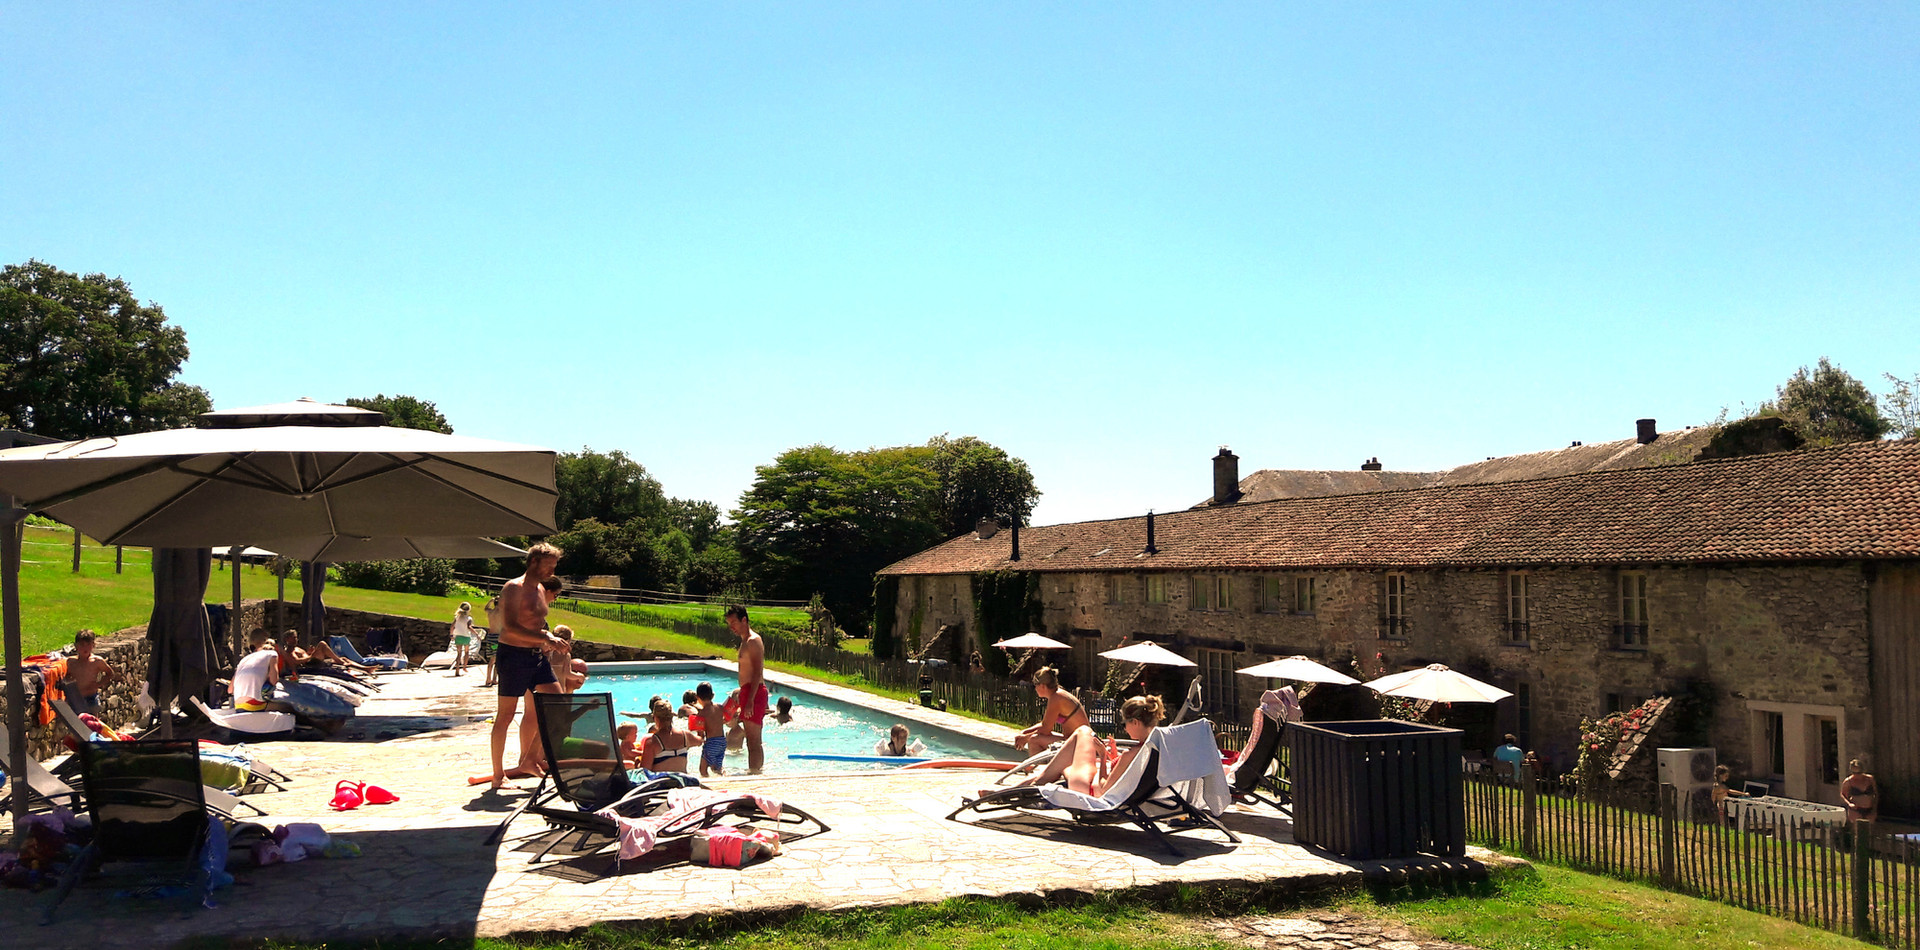 RELAXED AFTERNOON AT THE SWIMMING POOL